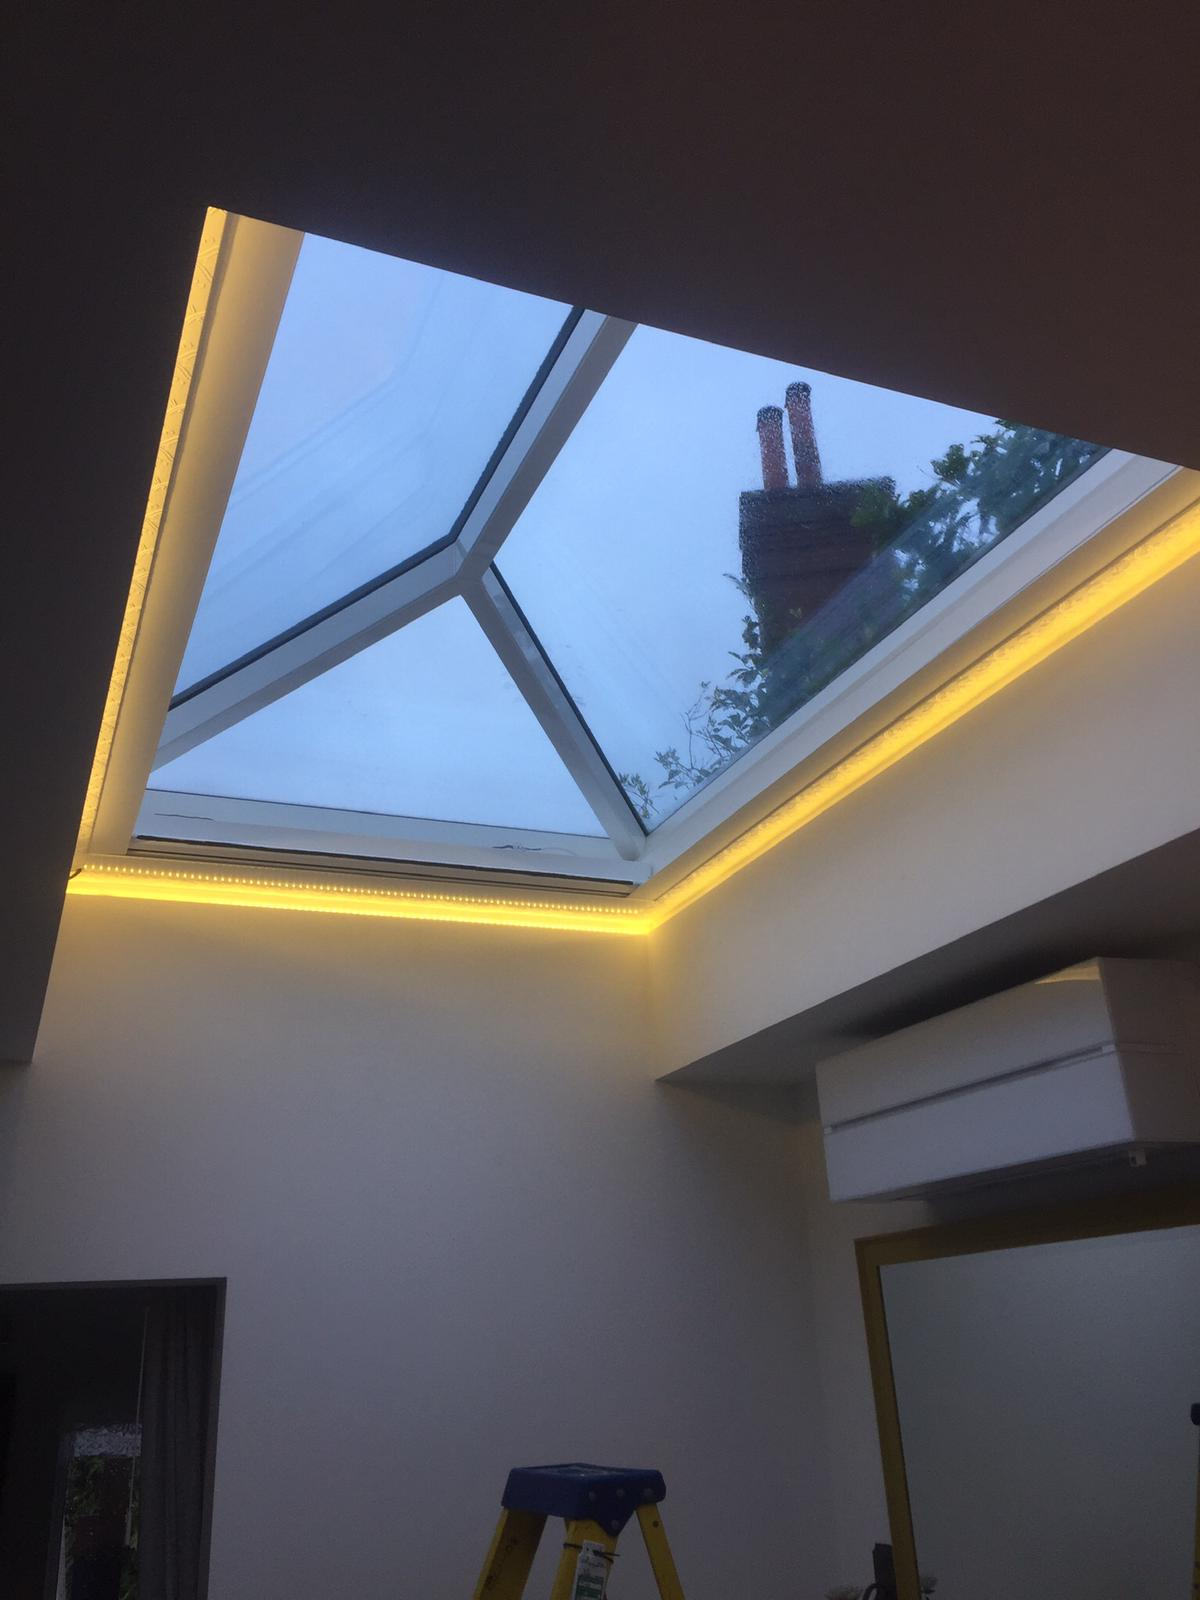 Customer's roof lantern blind open with LED lights around the edge